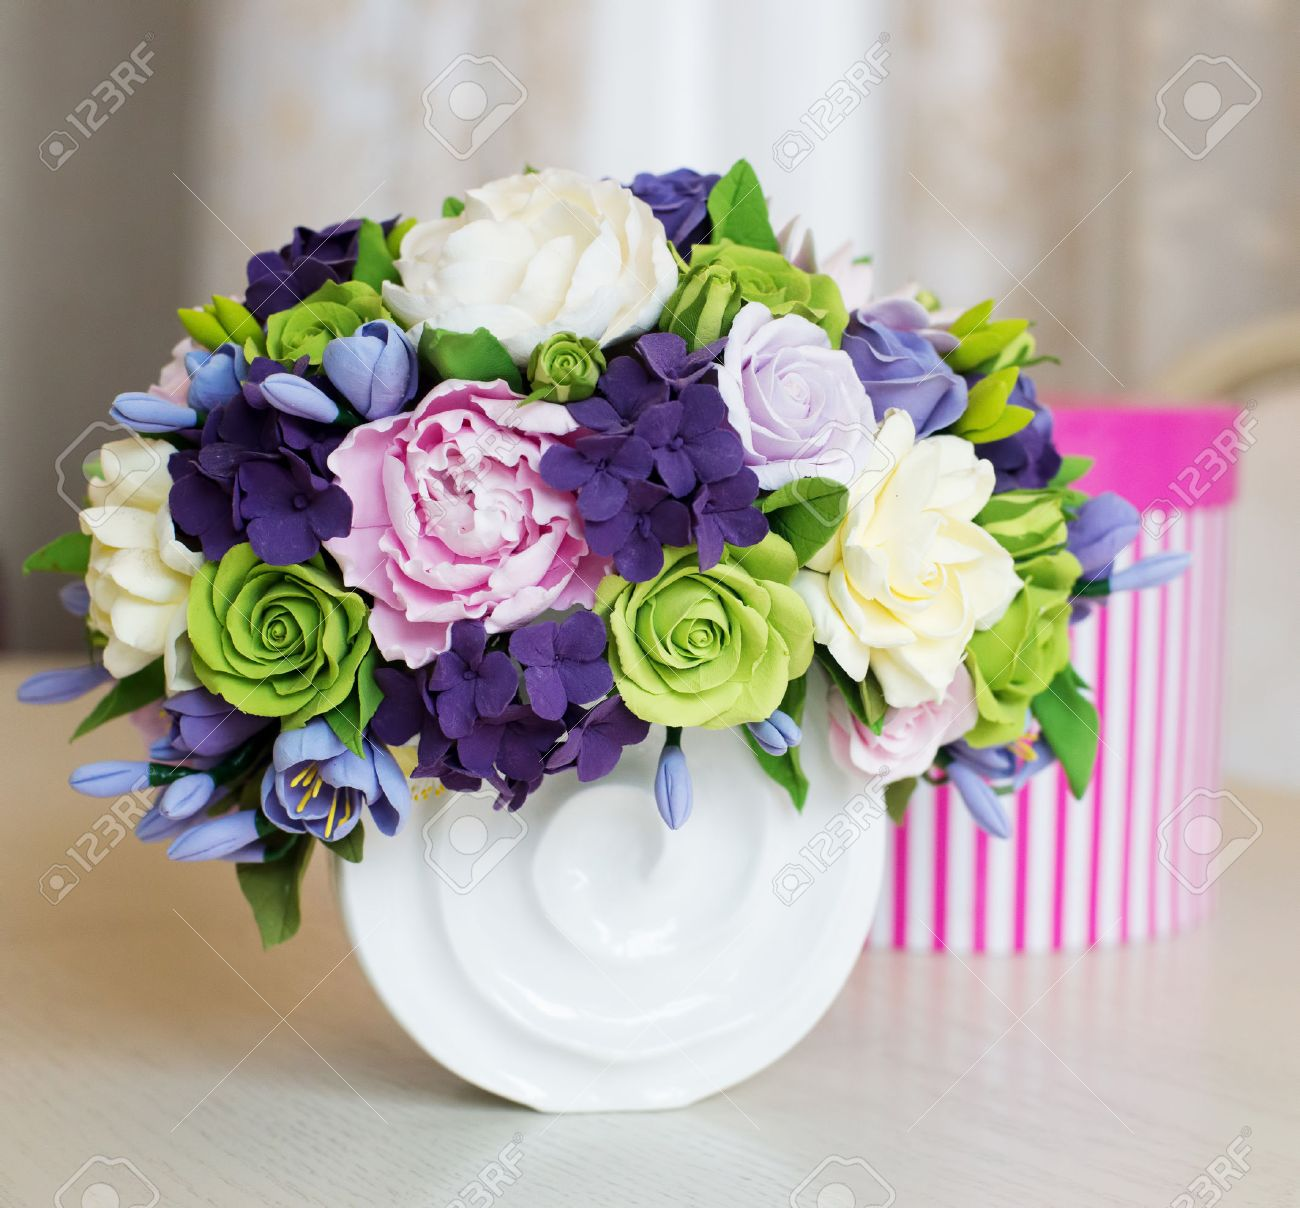 Rose Flower Bouquet And Gift Box On Wooden Table Stock Photo